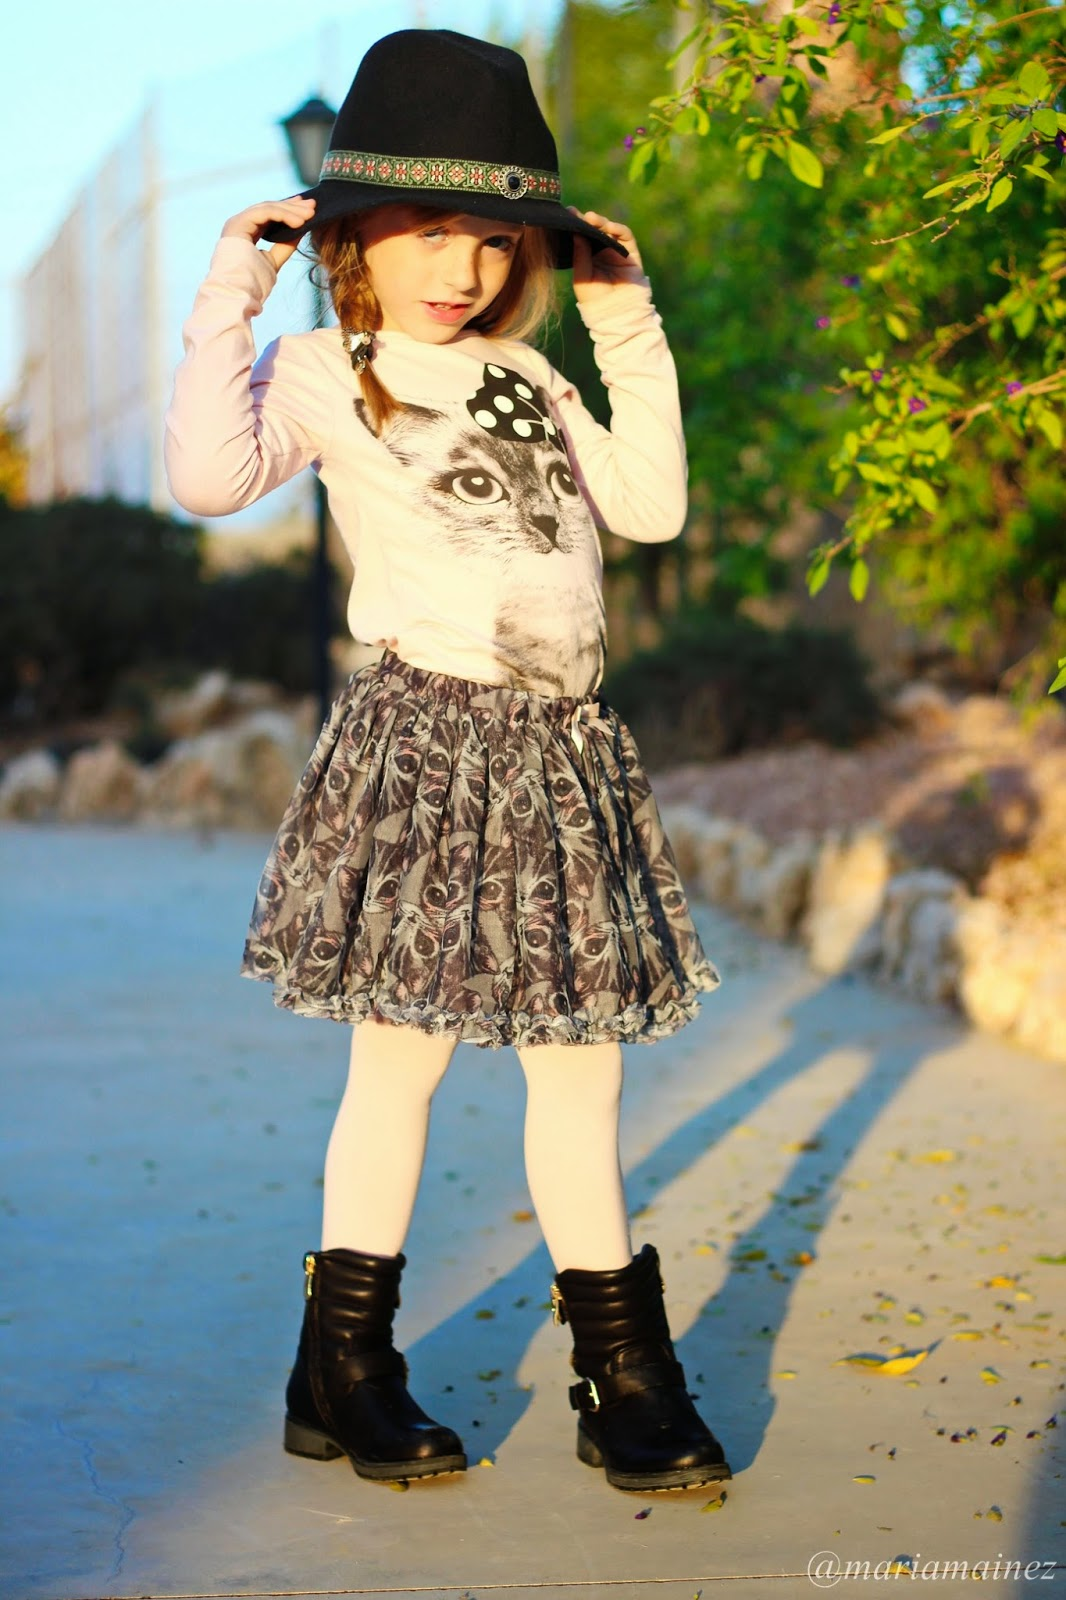 Mini blogger - Fashion mini blogger - Kids - Fashion kids- My little blogger